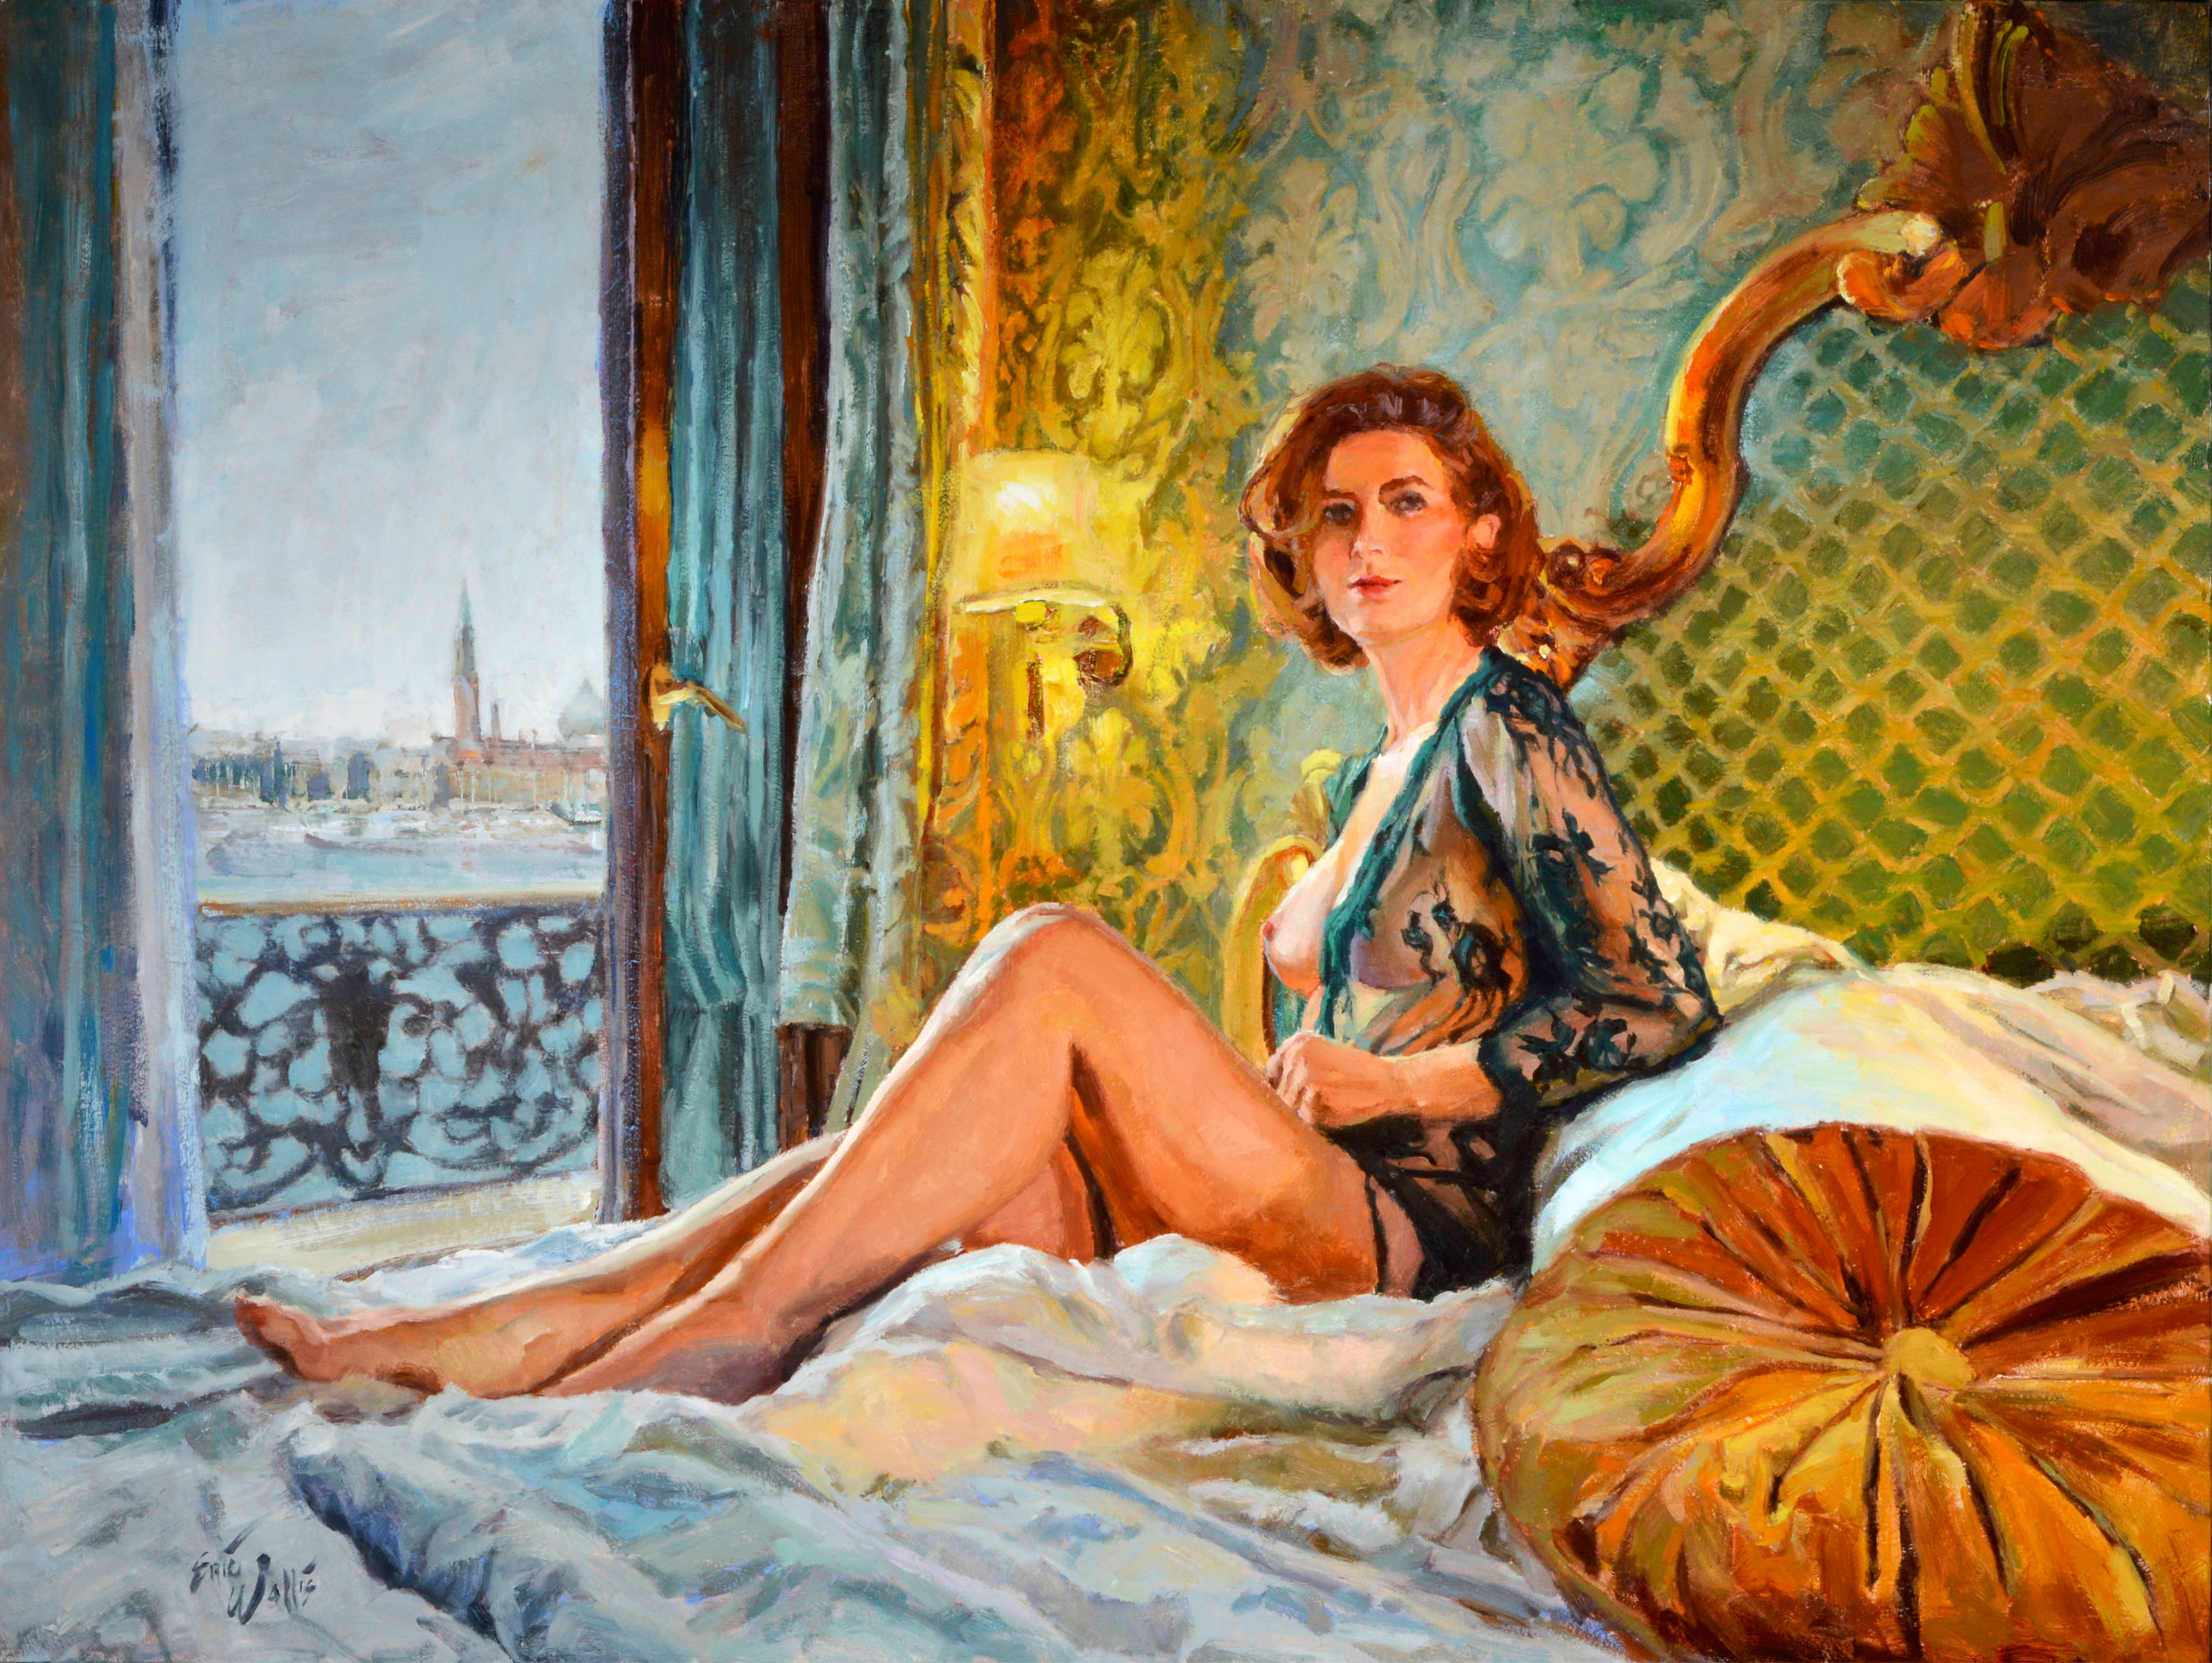 Room with a view 30x40 oil coldwax 80 yqzuhp